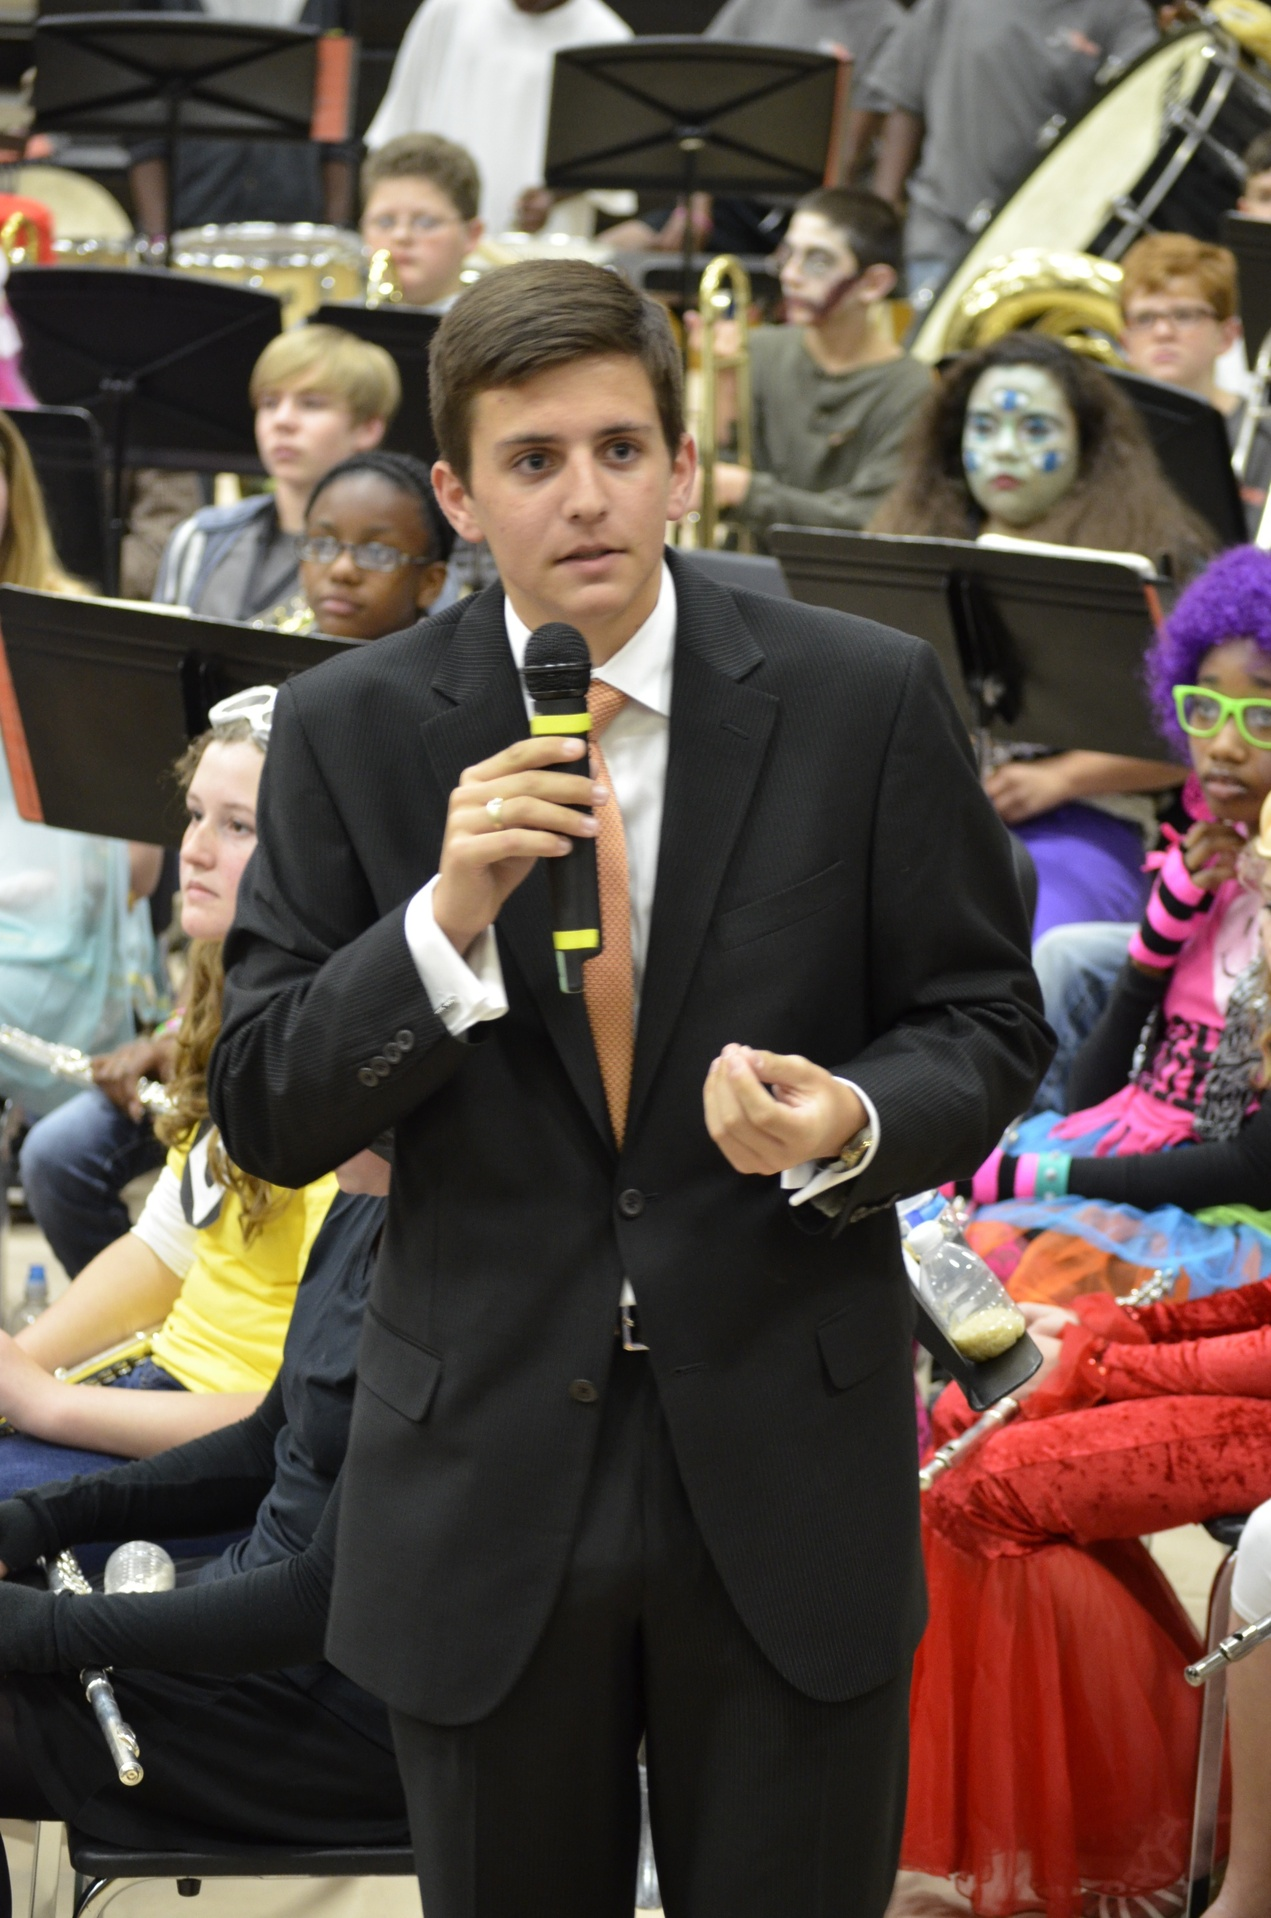 Grant, age 18, speaking at the Simmons Middle School (Hoover, AL) Band Halloween Costume Concert – 2013